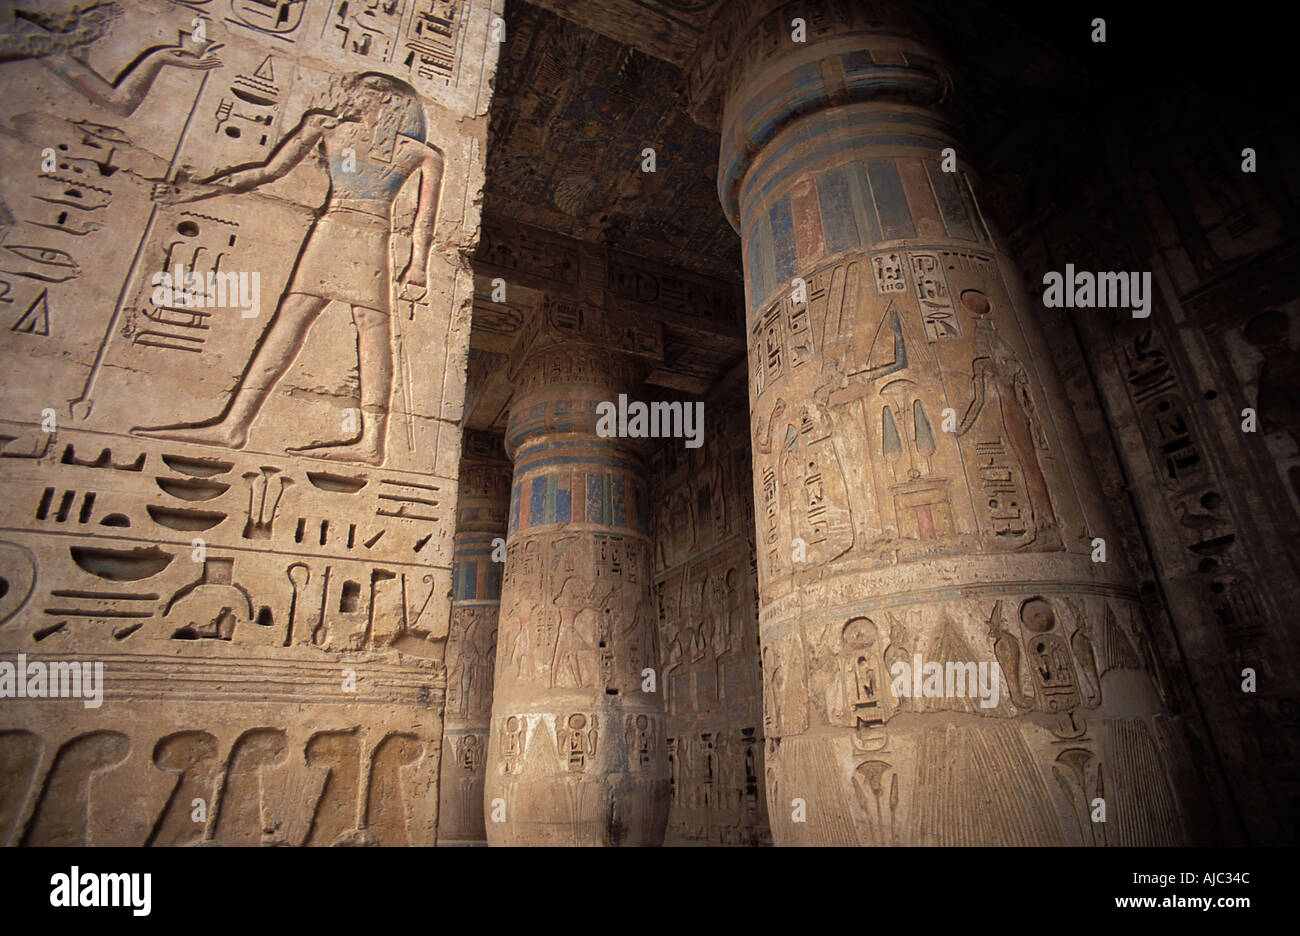 Thebes The site of Medinet Habu Egypt Columns and reliefs in the second courtyardStock Photo